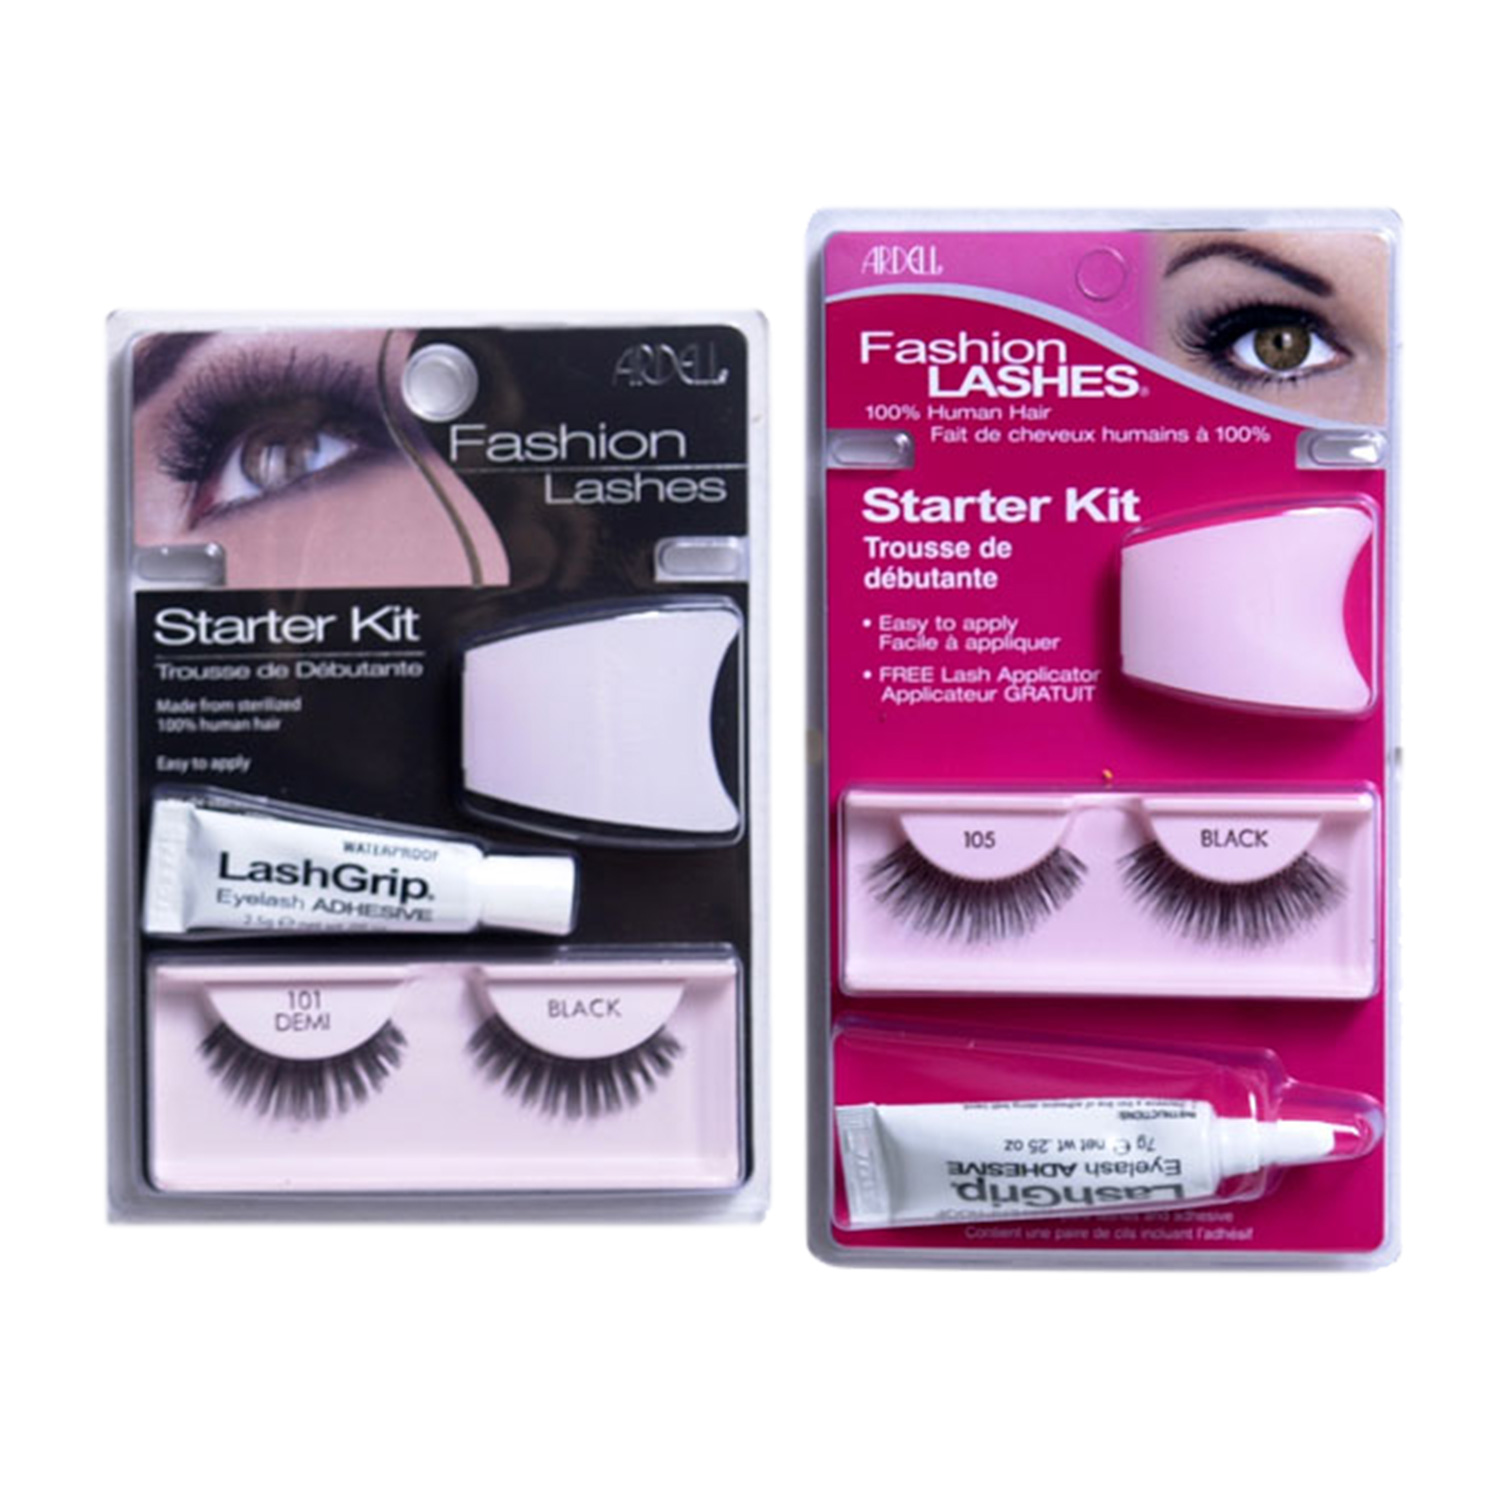 Ardell fashion lashes #101 demi 79